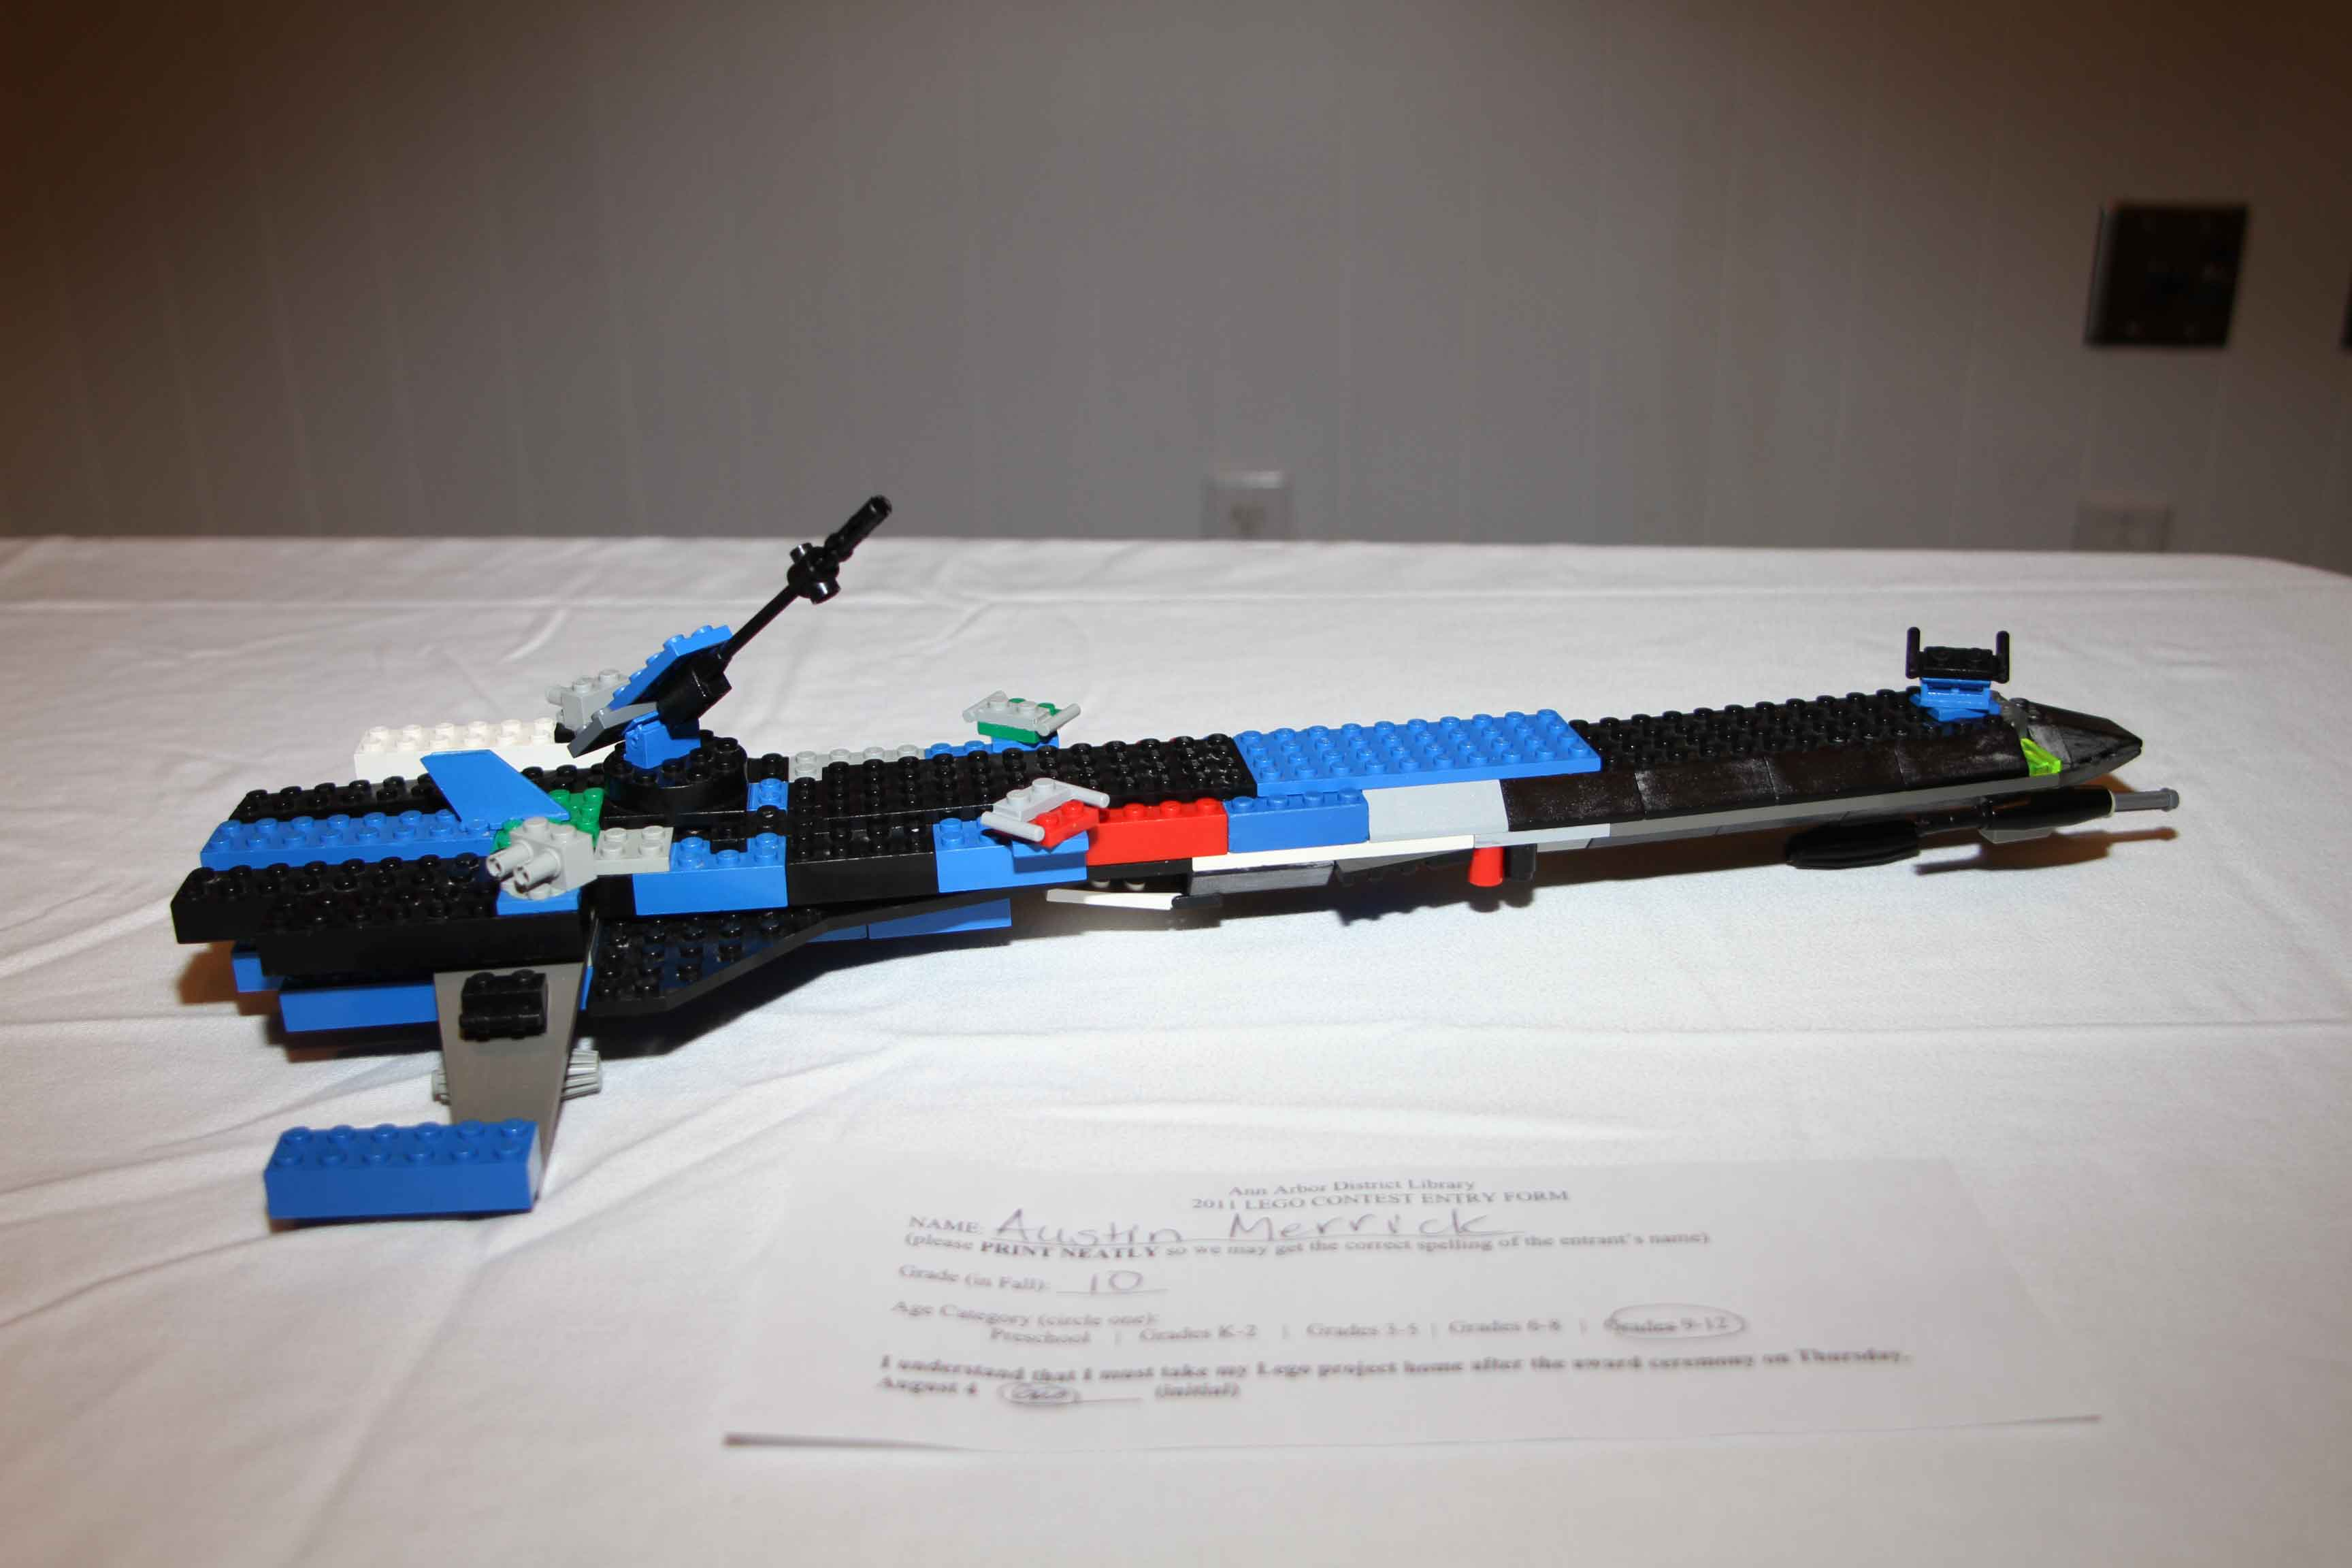 EDS Scion, Best Vehicle Grades 9-12, 2011 LEGO Contest image